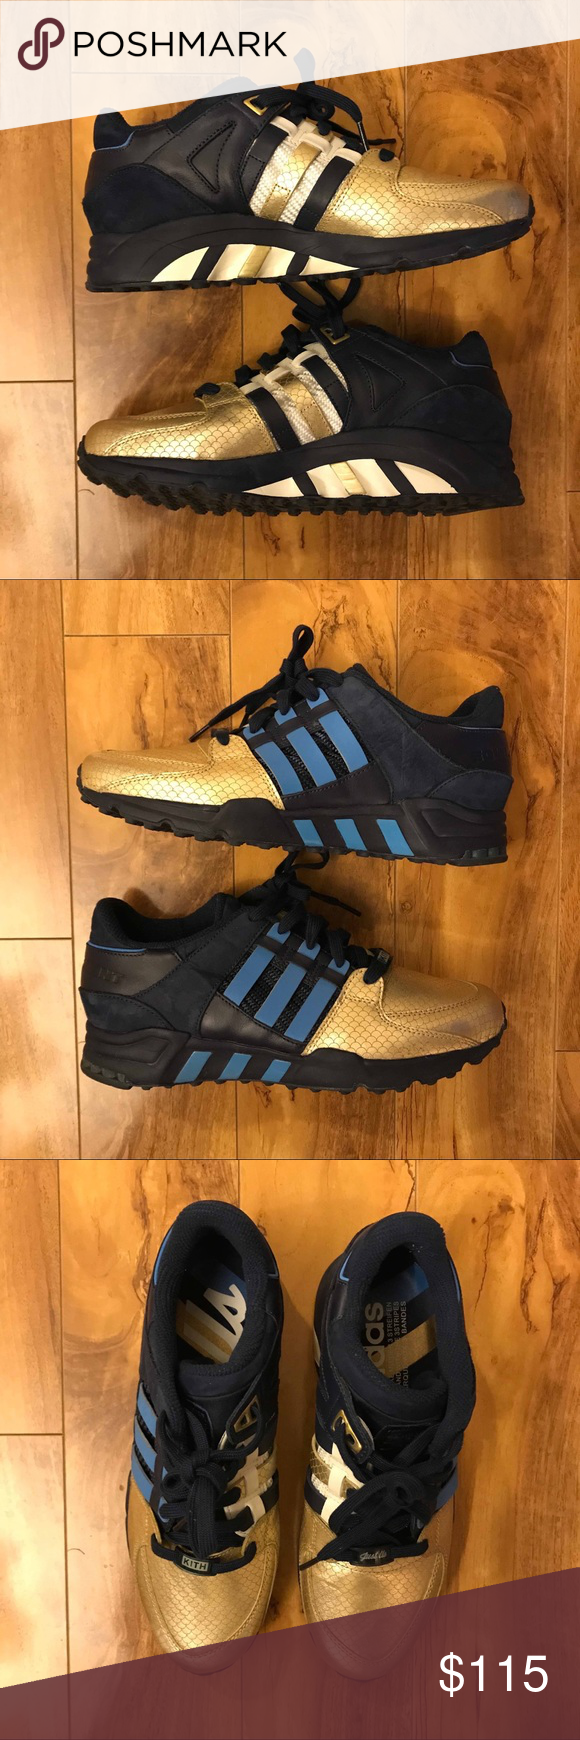 san francisco 3be65 9ed77 Ronnie Fieg Kith Adidas EQT Support 93 NYC Bravest Lightly used Ronnie Fieg  x Kith x Adidas EQT Support NYC s Bravest sneakers, size 8.5. 8 10  condition.